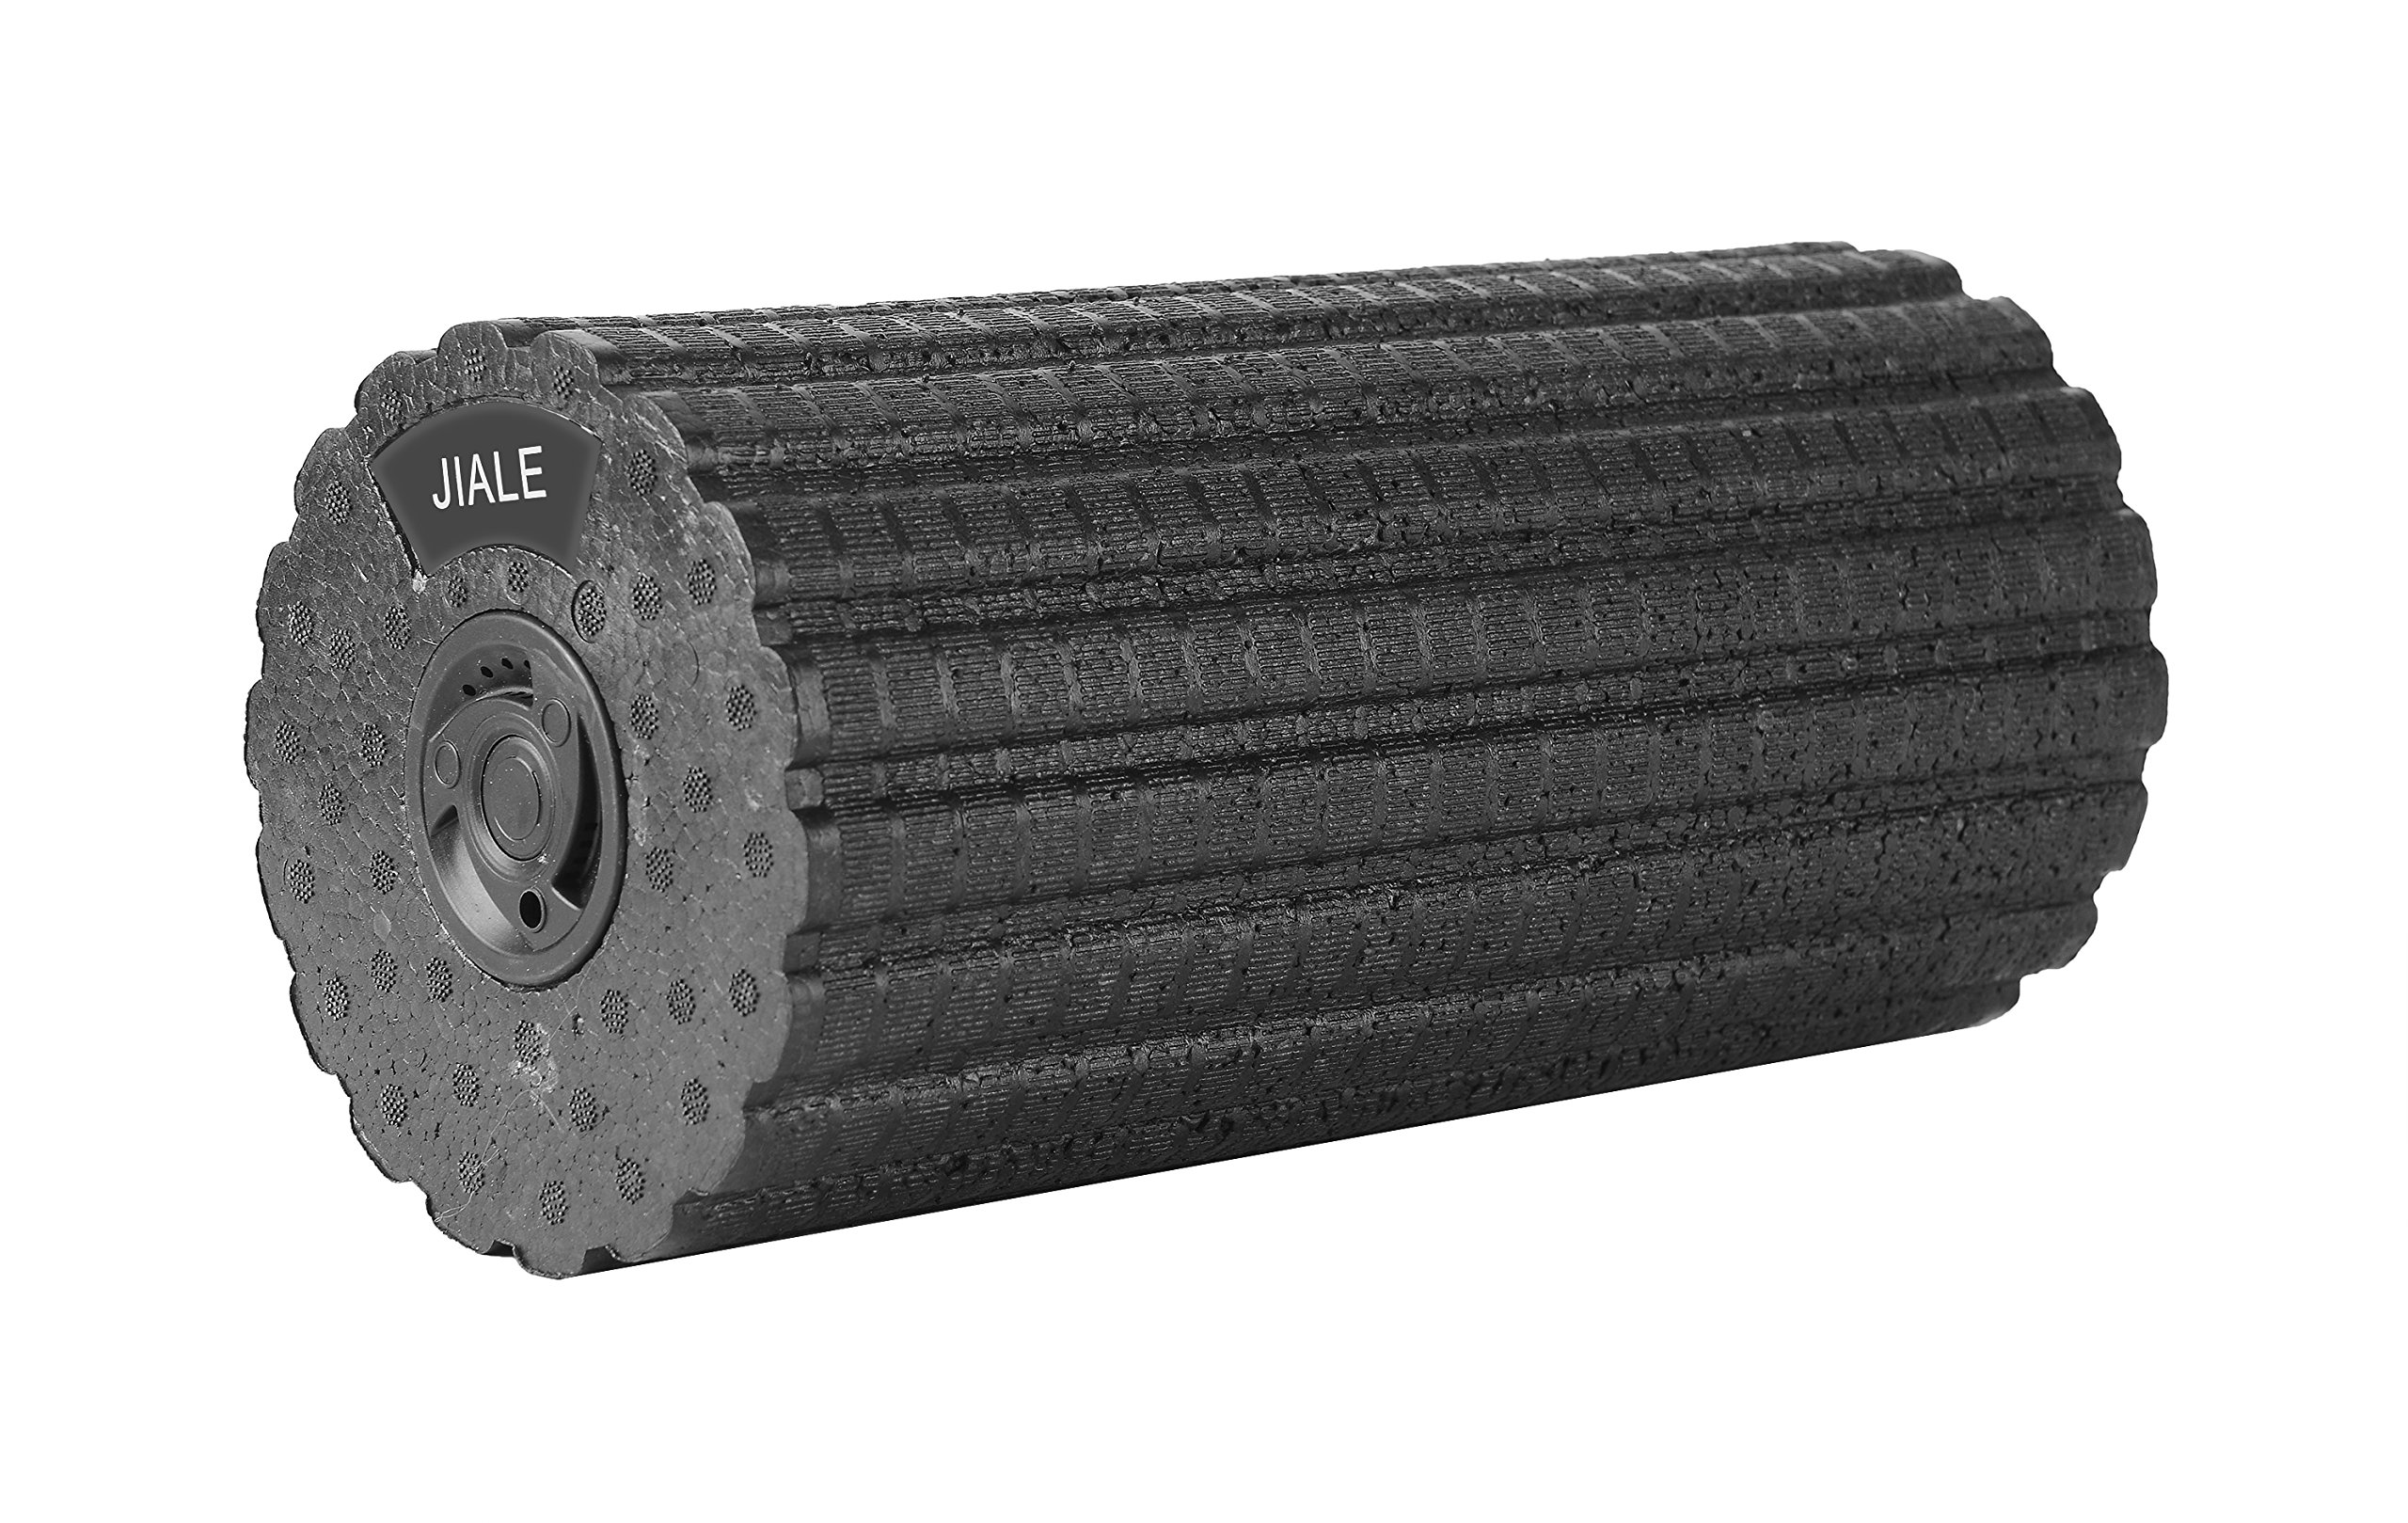 Vibrating Foam Roller 4 Speed Rechargeable Firm Foam Roller By JIALE, Deep Tissue Massager For Exercise, Yoga, Trigger Point, Cycling, Running, Stretching, Muscle Therapy